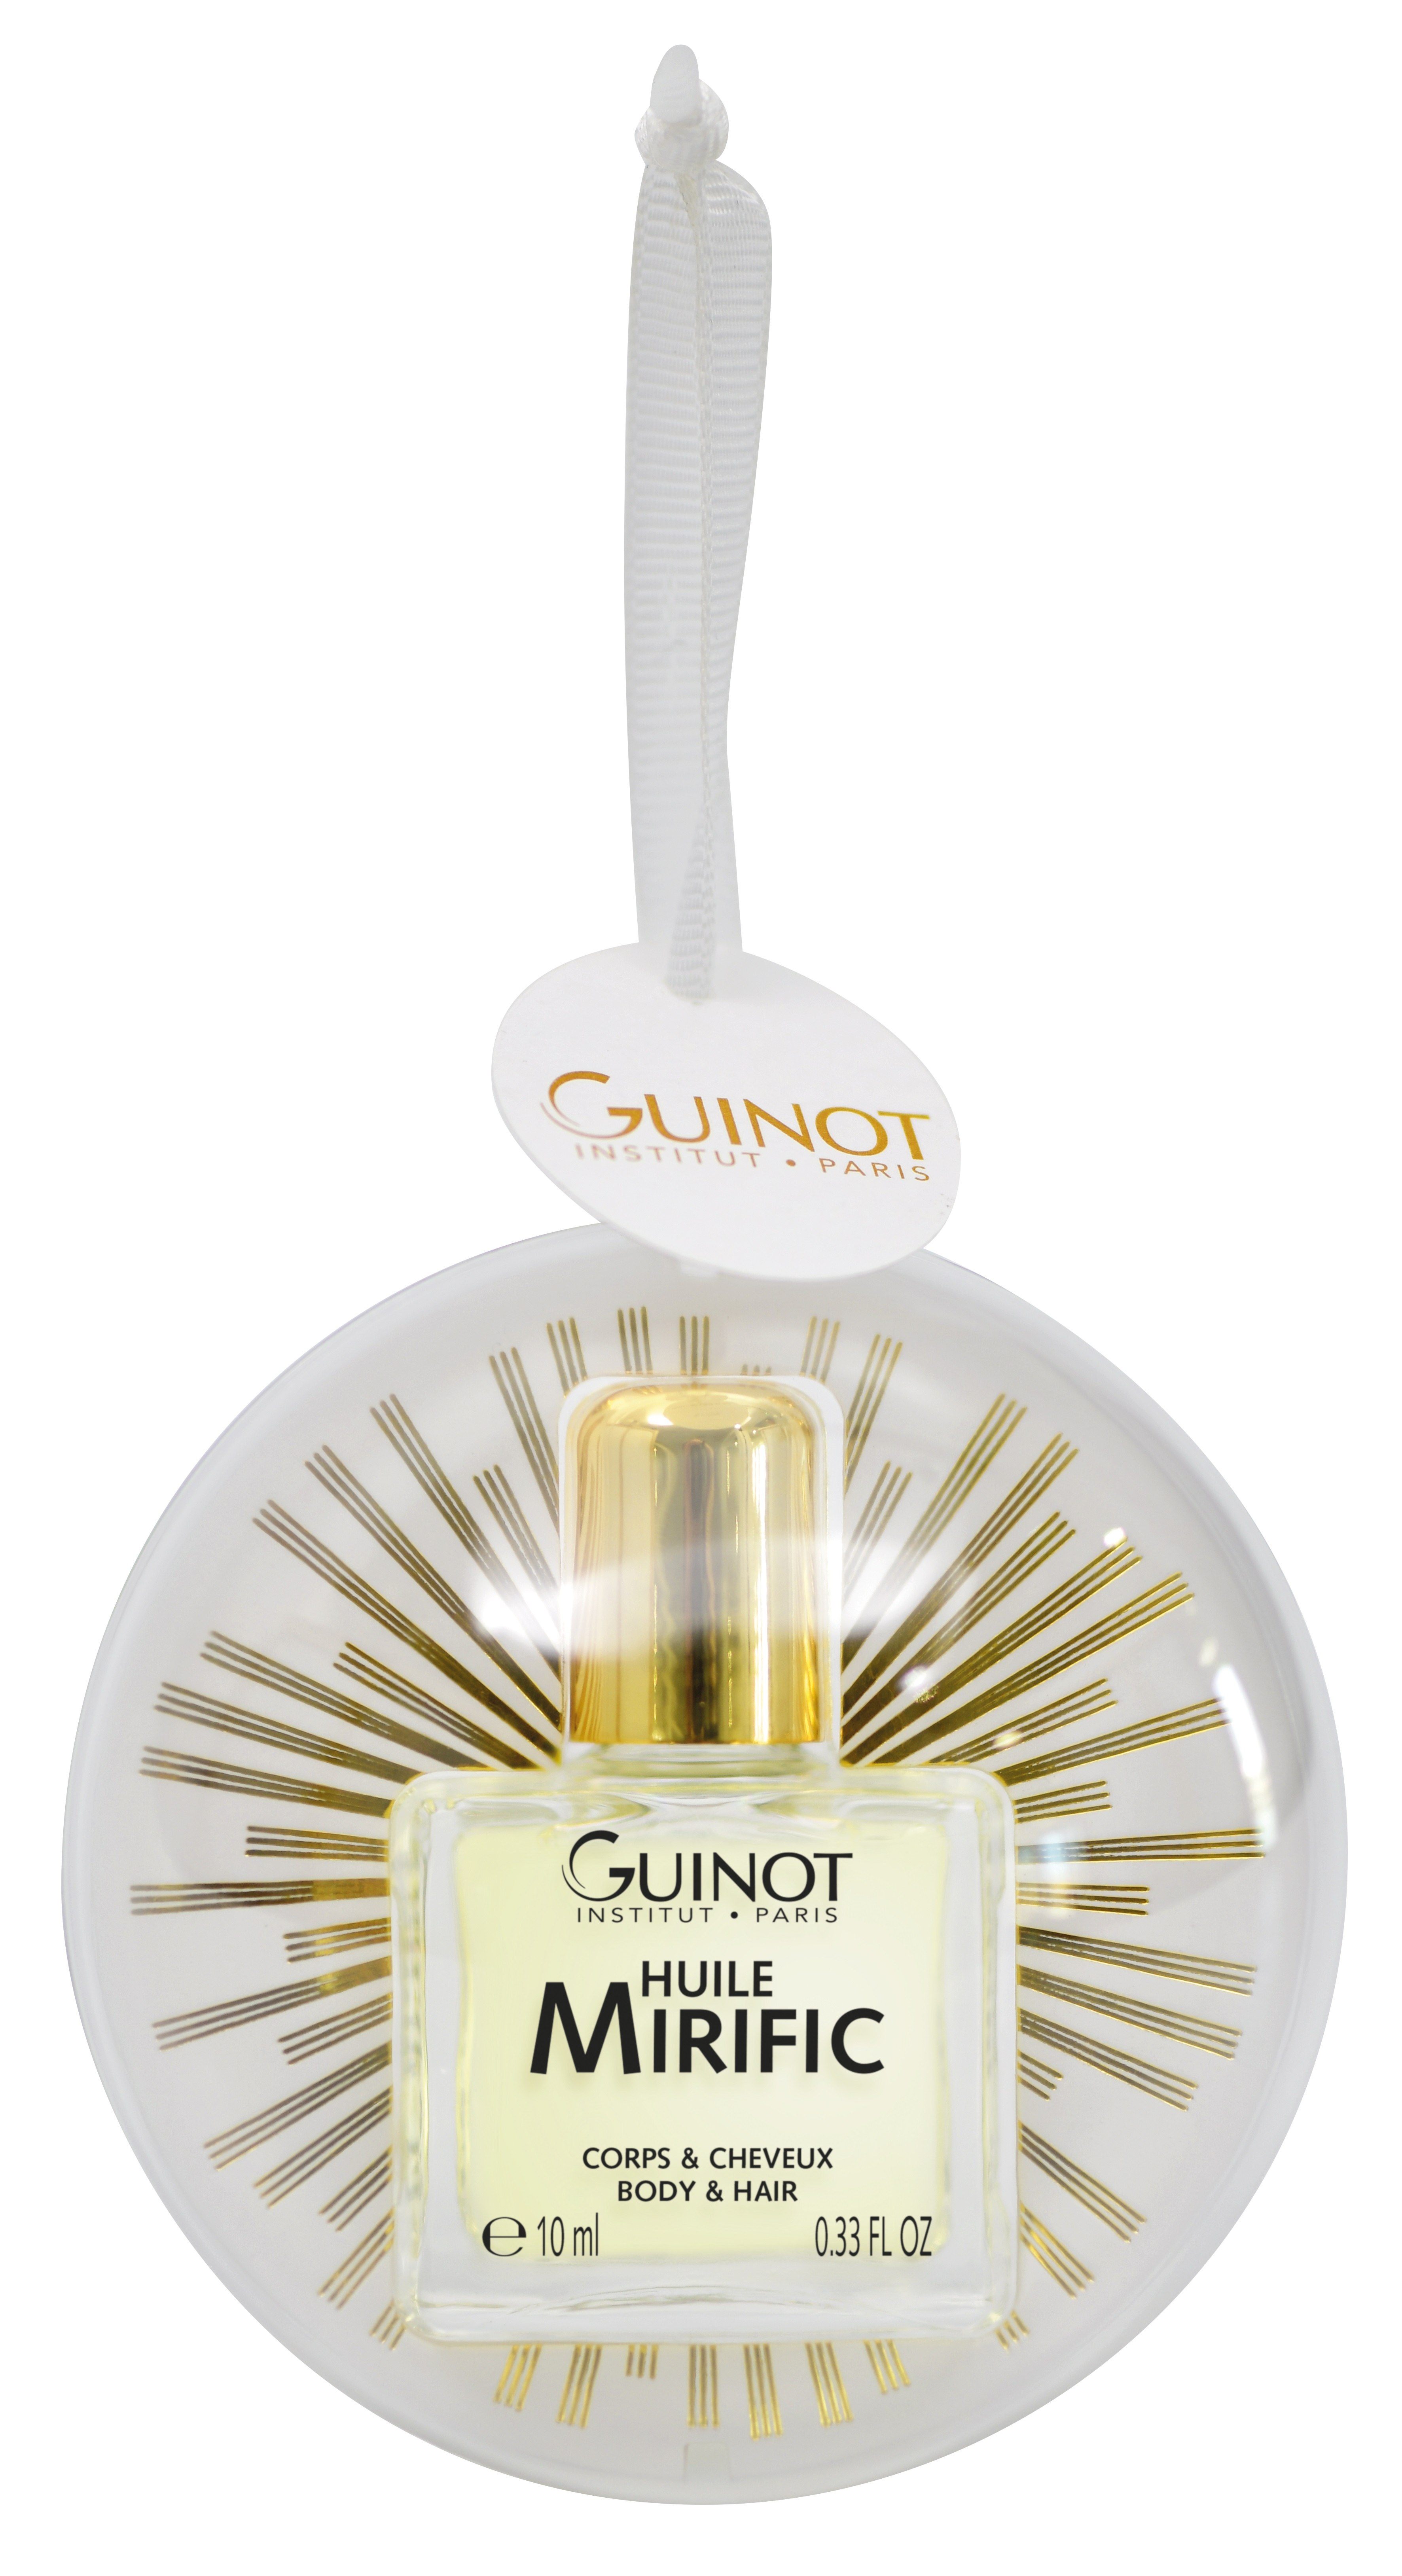 Guinot Huile Mirific festive bauble BeautyandHairdressing